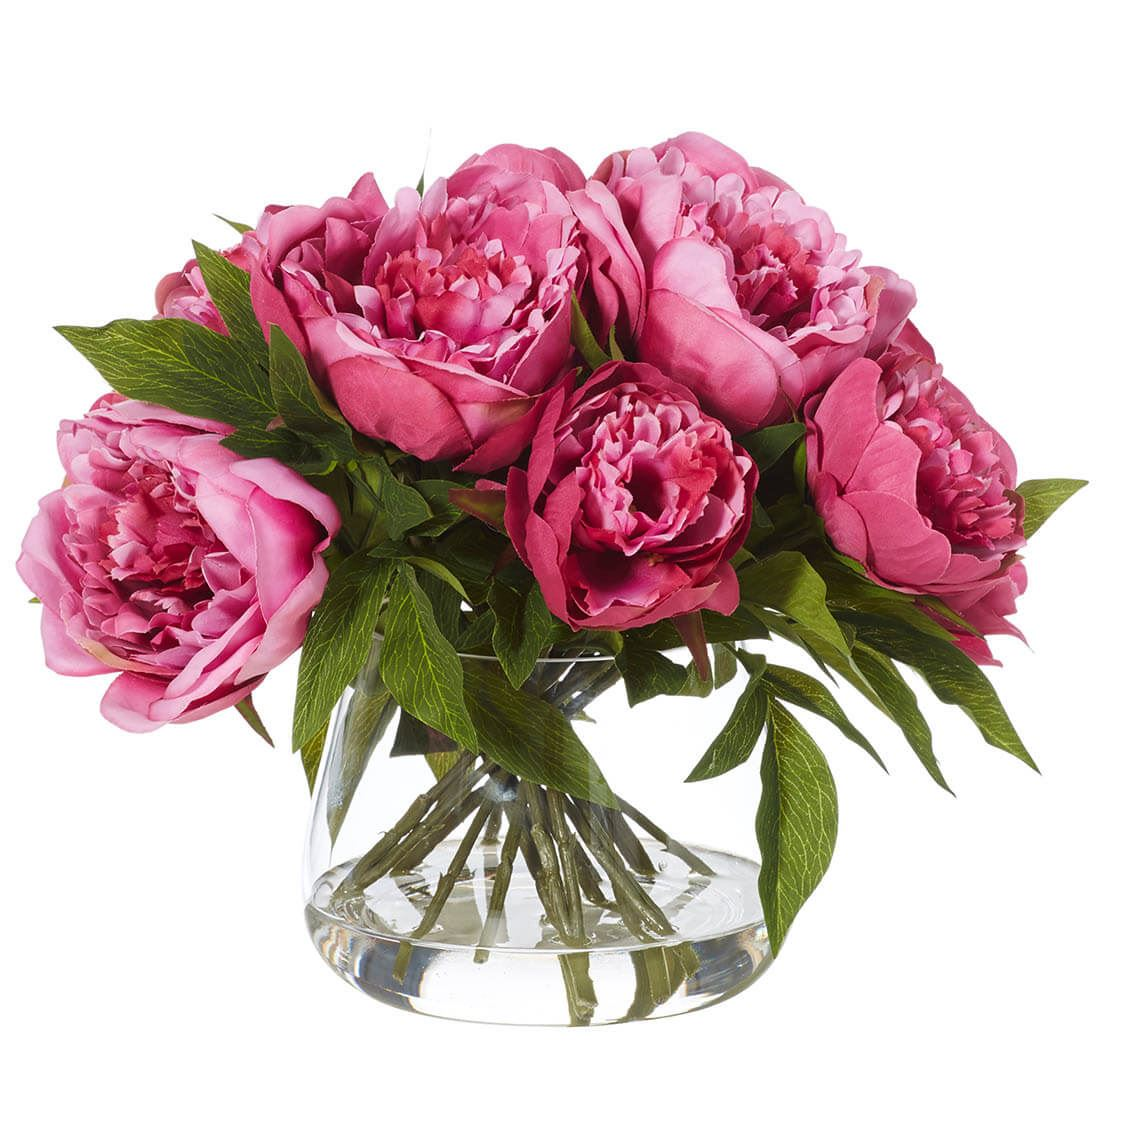 Peony Artificial Flower Size W 36cm x D 36cm x H 28cm Freedom by Freedom, a Plants for sale on Style Sourcebook